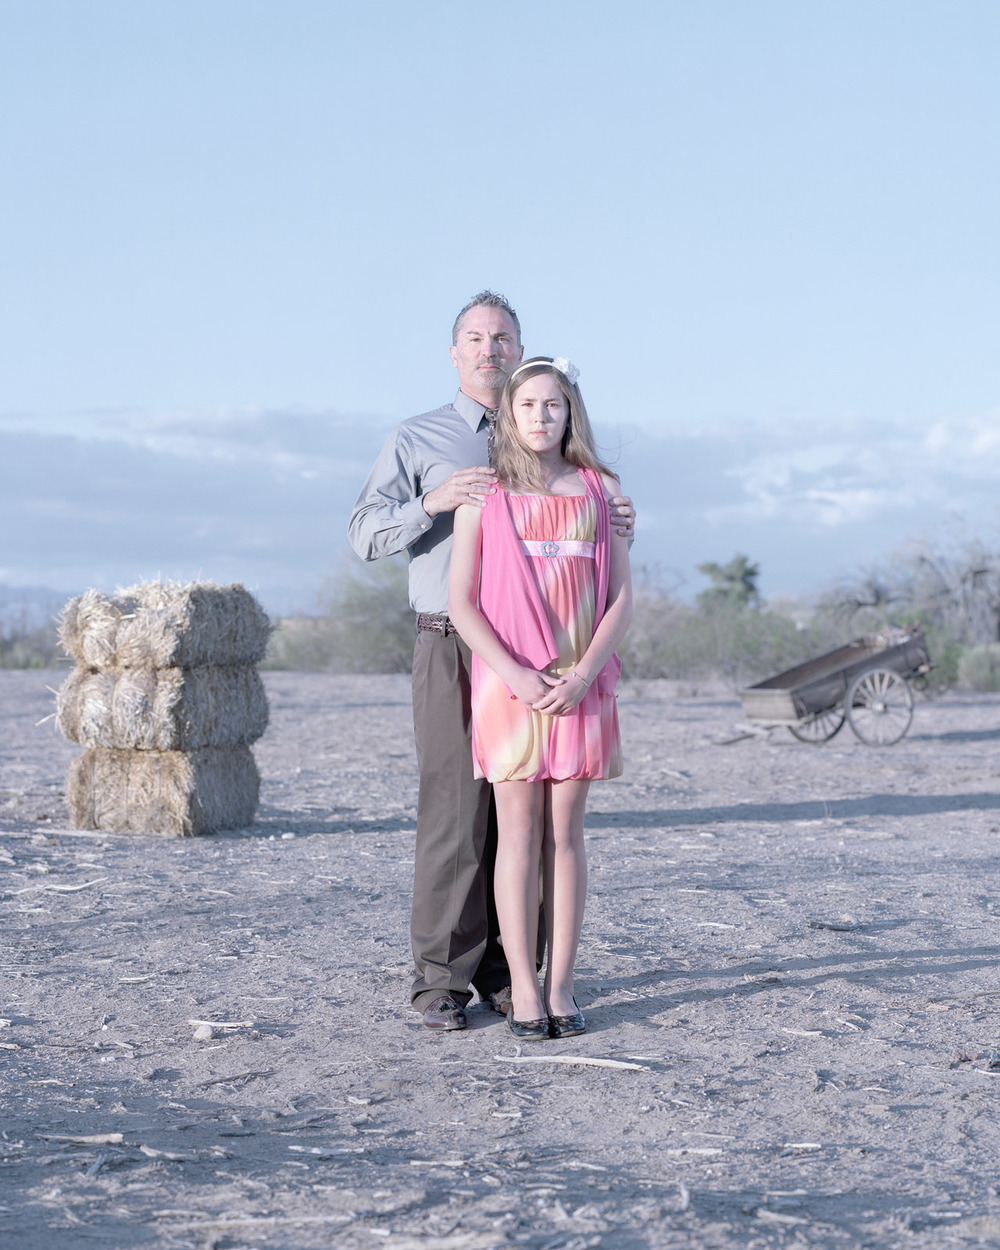 Tom & Calee Cortes, Surprise, Arizona